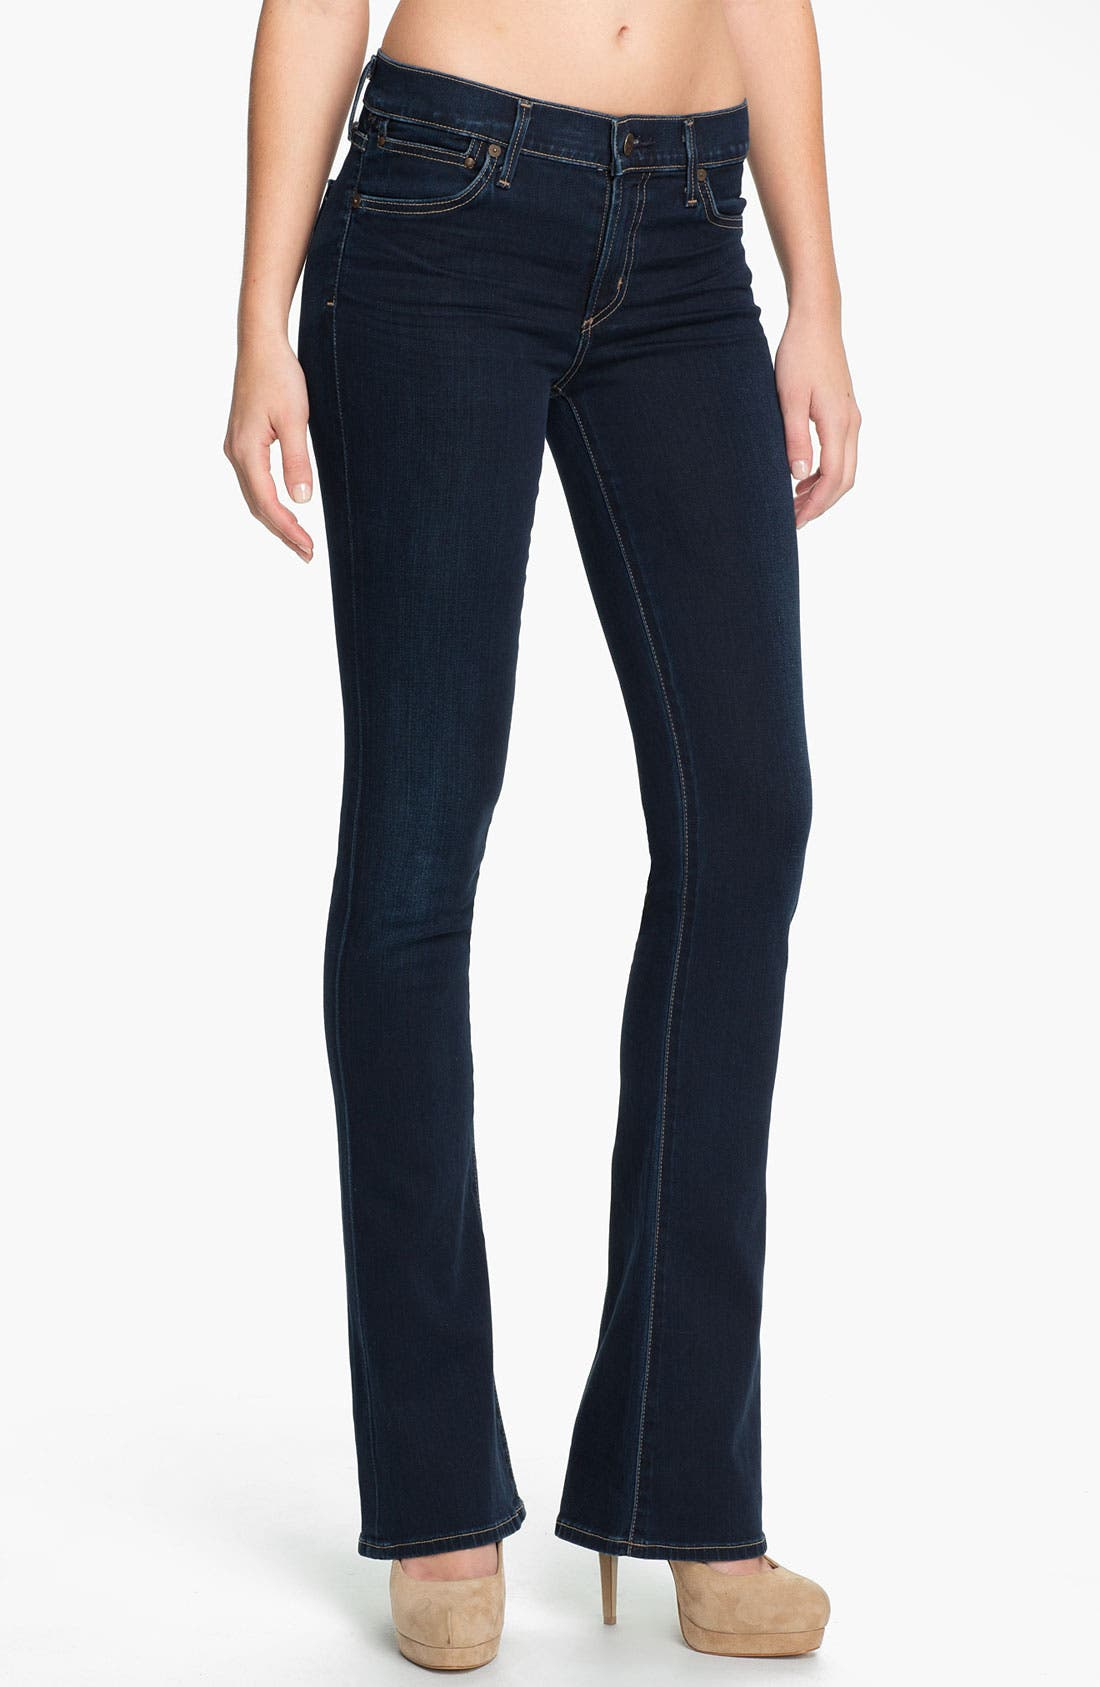 Alternate Image 1 Selected - Citizens of Humanity 'Emmanuelle' Slim Bootcut Jeans (Starry)